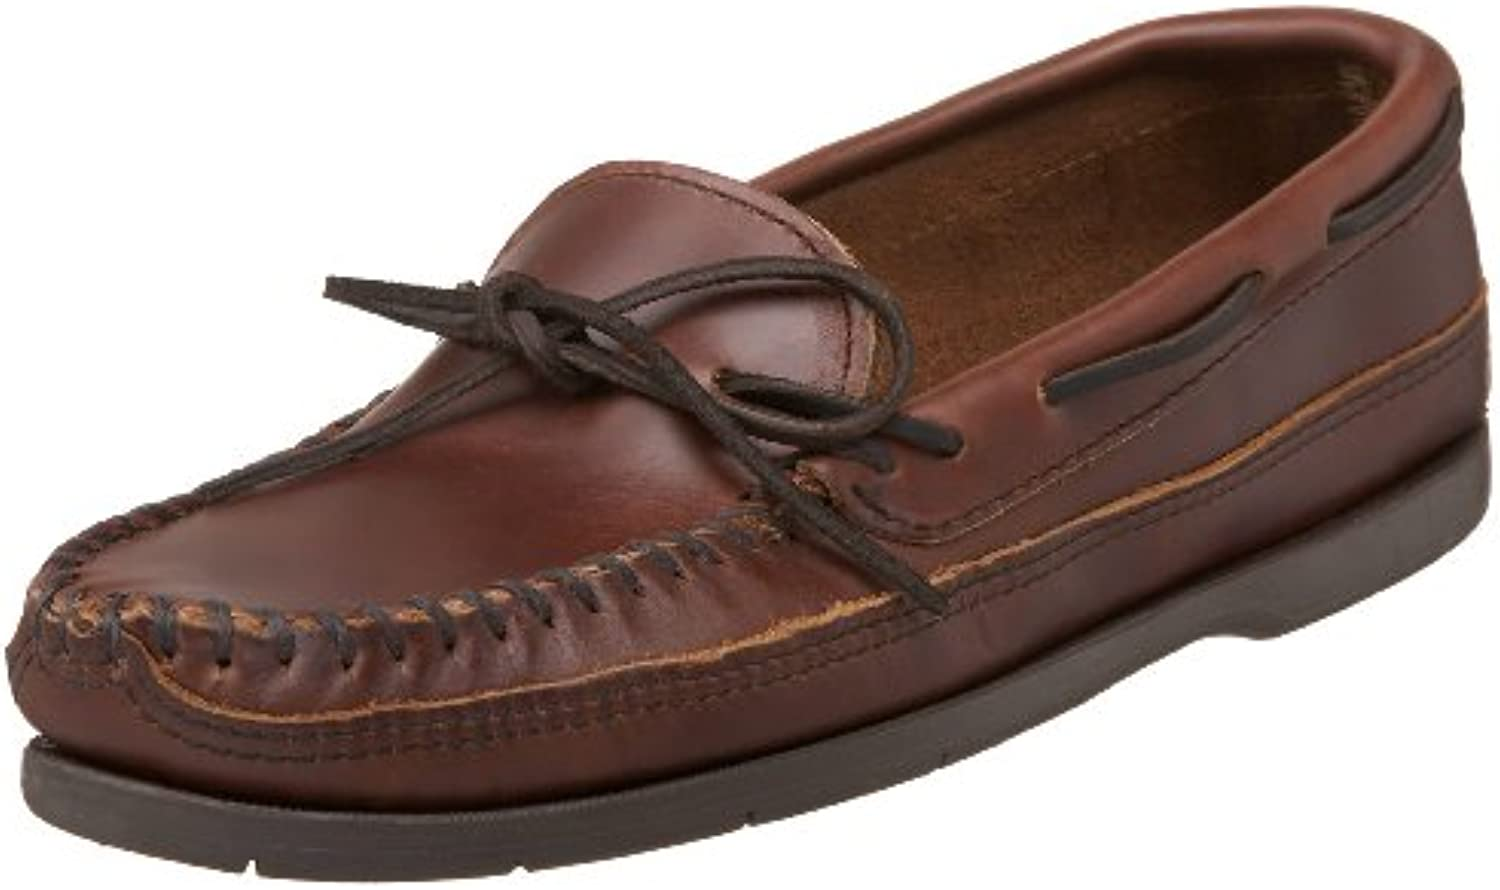 Minnetonka hombres Double Bottom Slip-On,marrón,8.5 M US